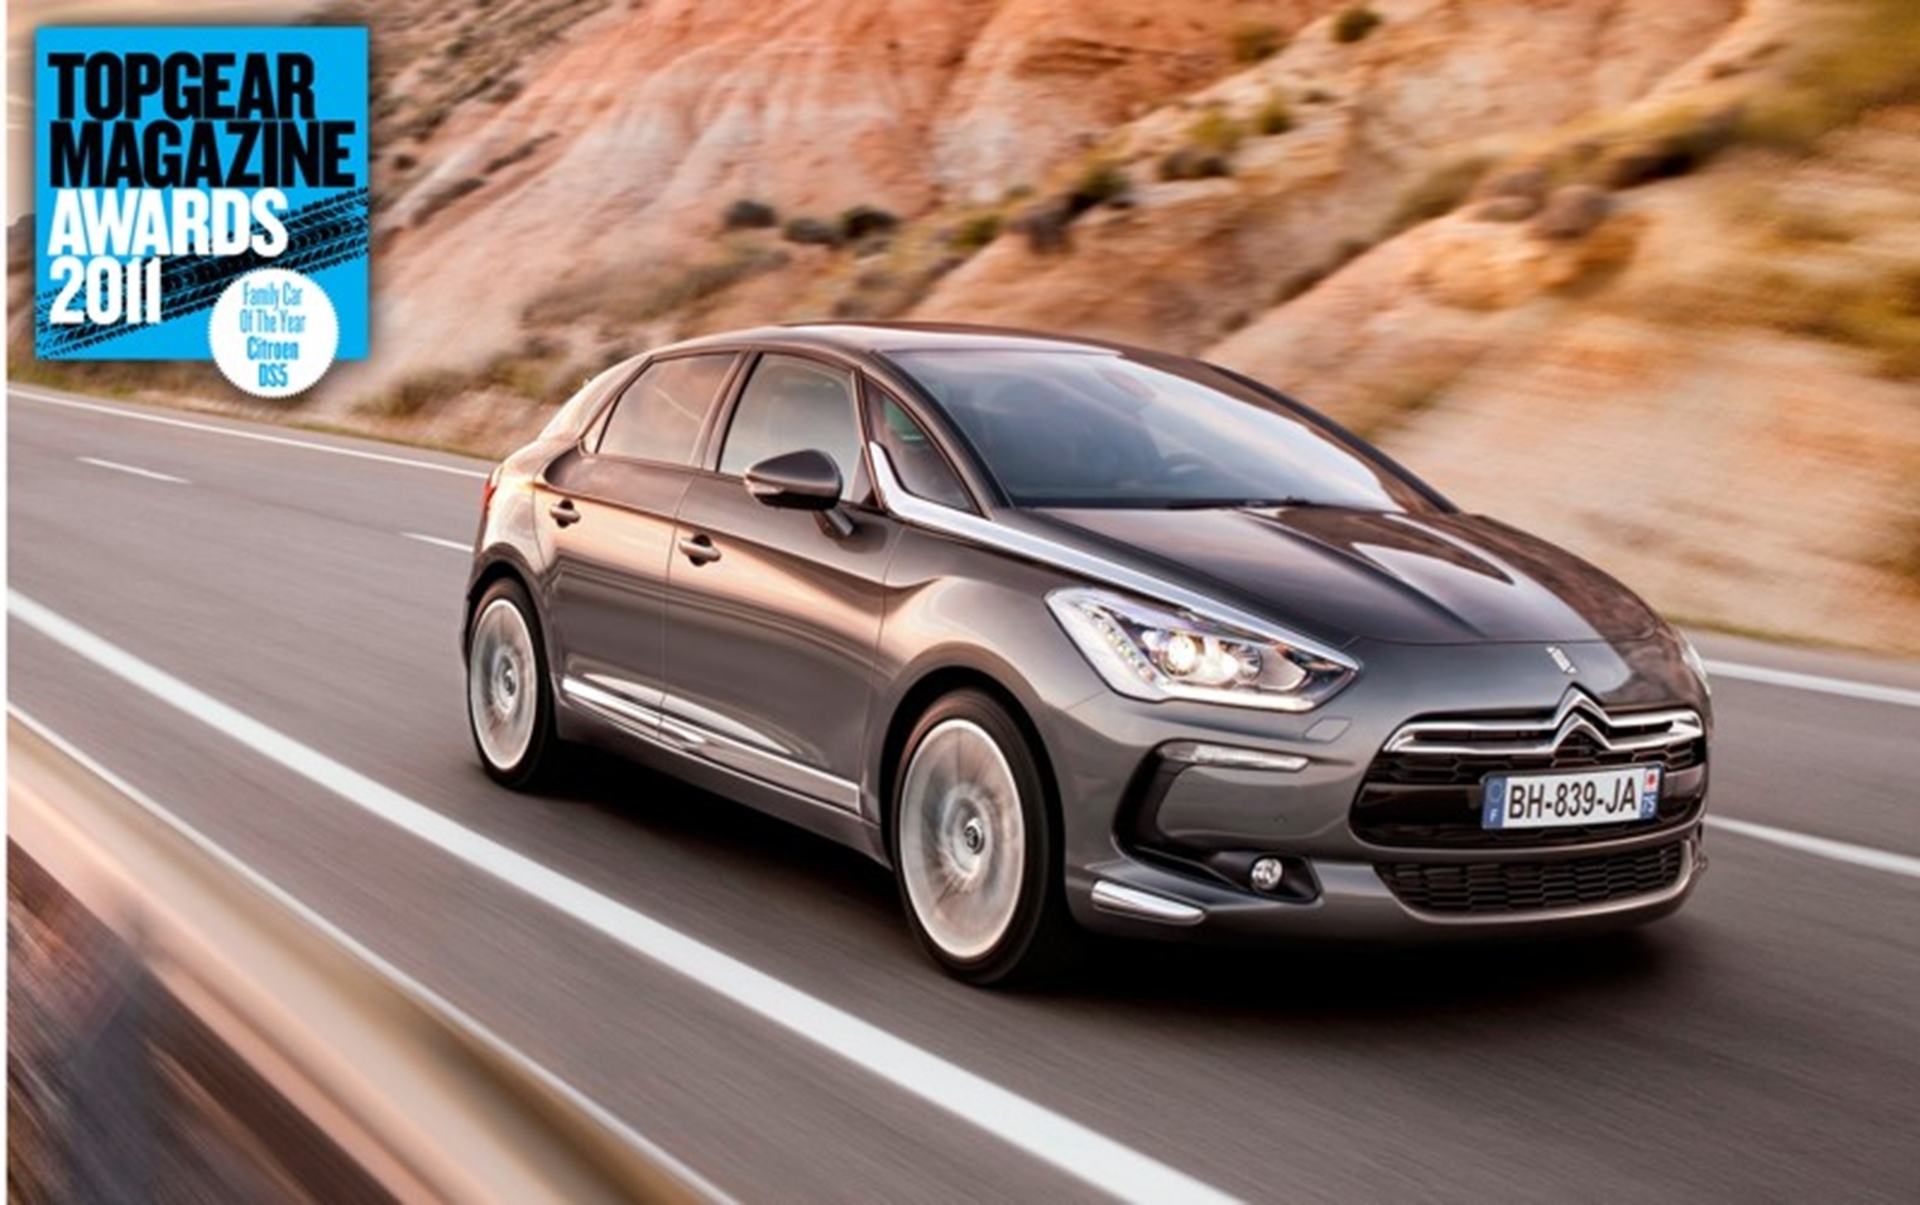 New Citroën DS5 is Top Gear Magazines Family Car of the Year